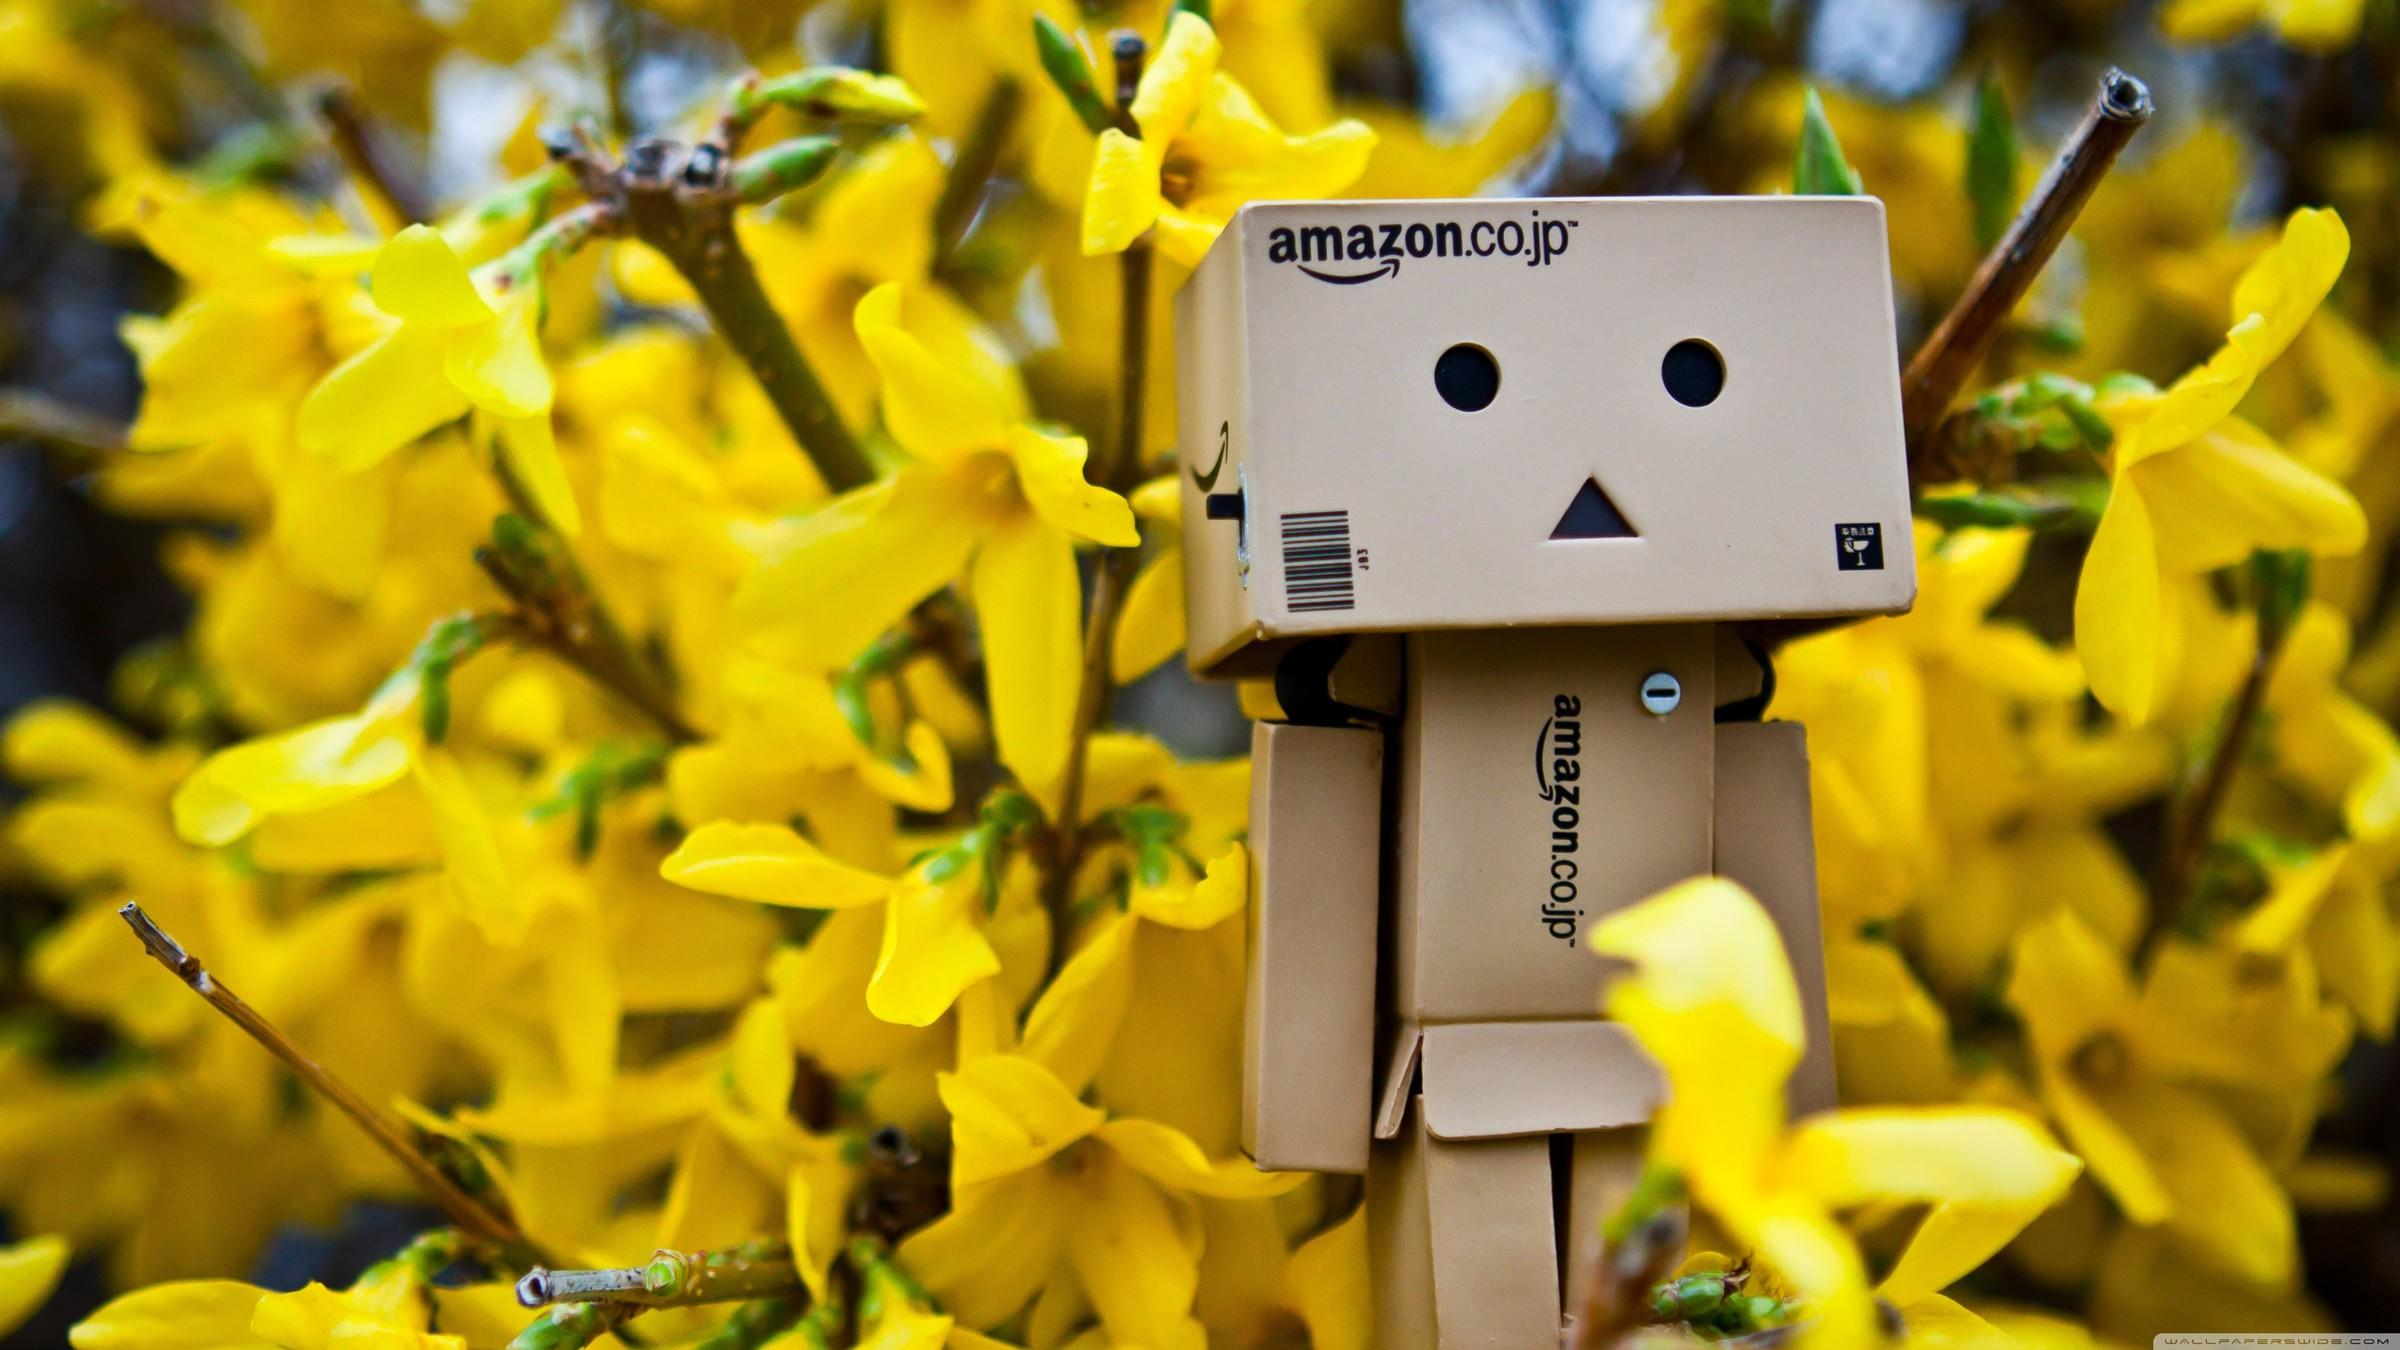 Danboard abstract amazon spring time wallpapers